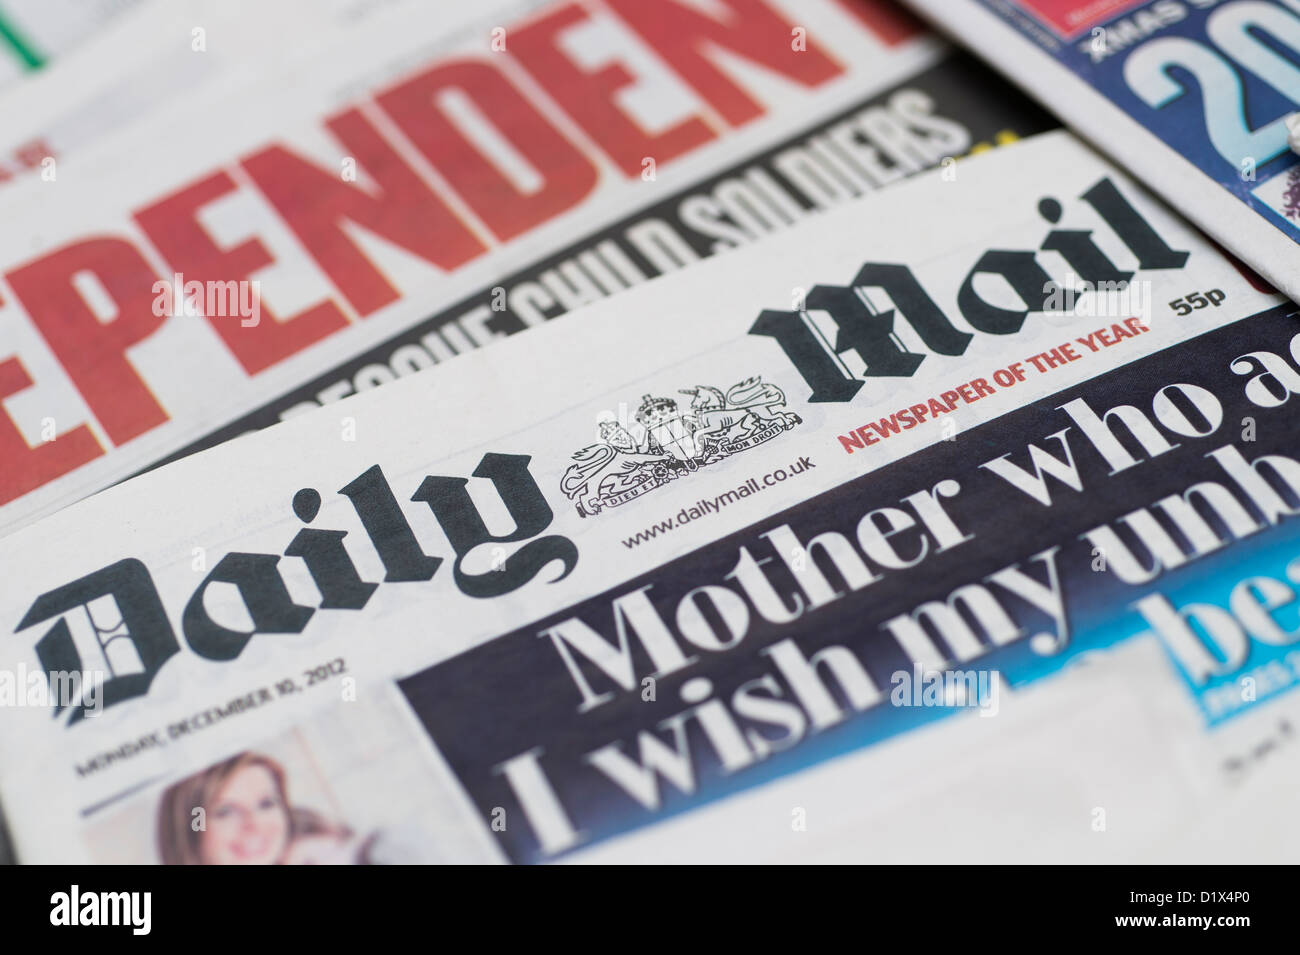 The front pages and mastheads of UK British English daily national newspaper The Daily Mail - Stock Image